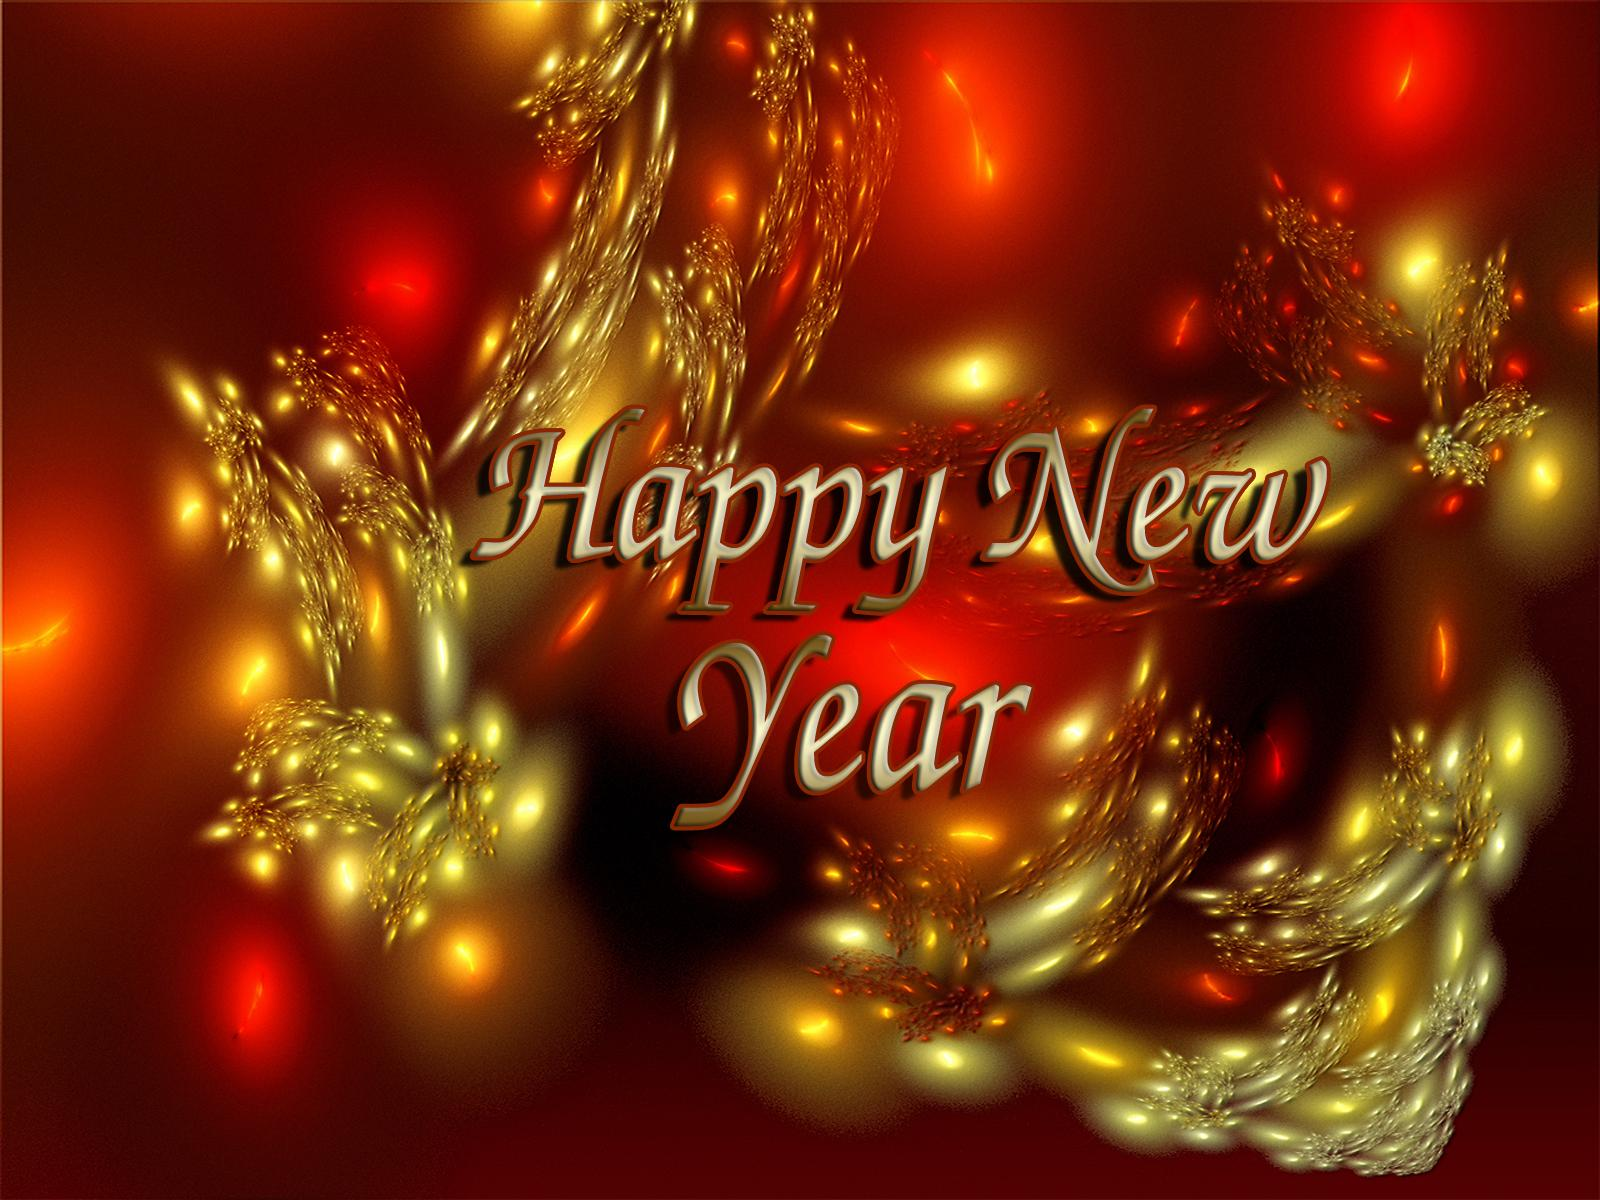 Happy New Year Greeting Cards Animated Happy New Year